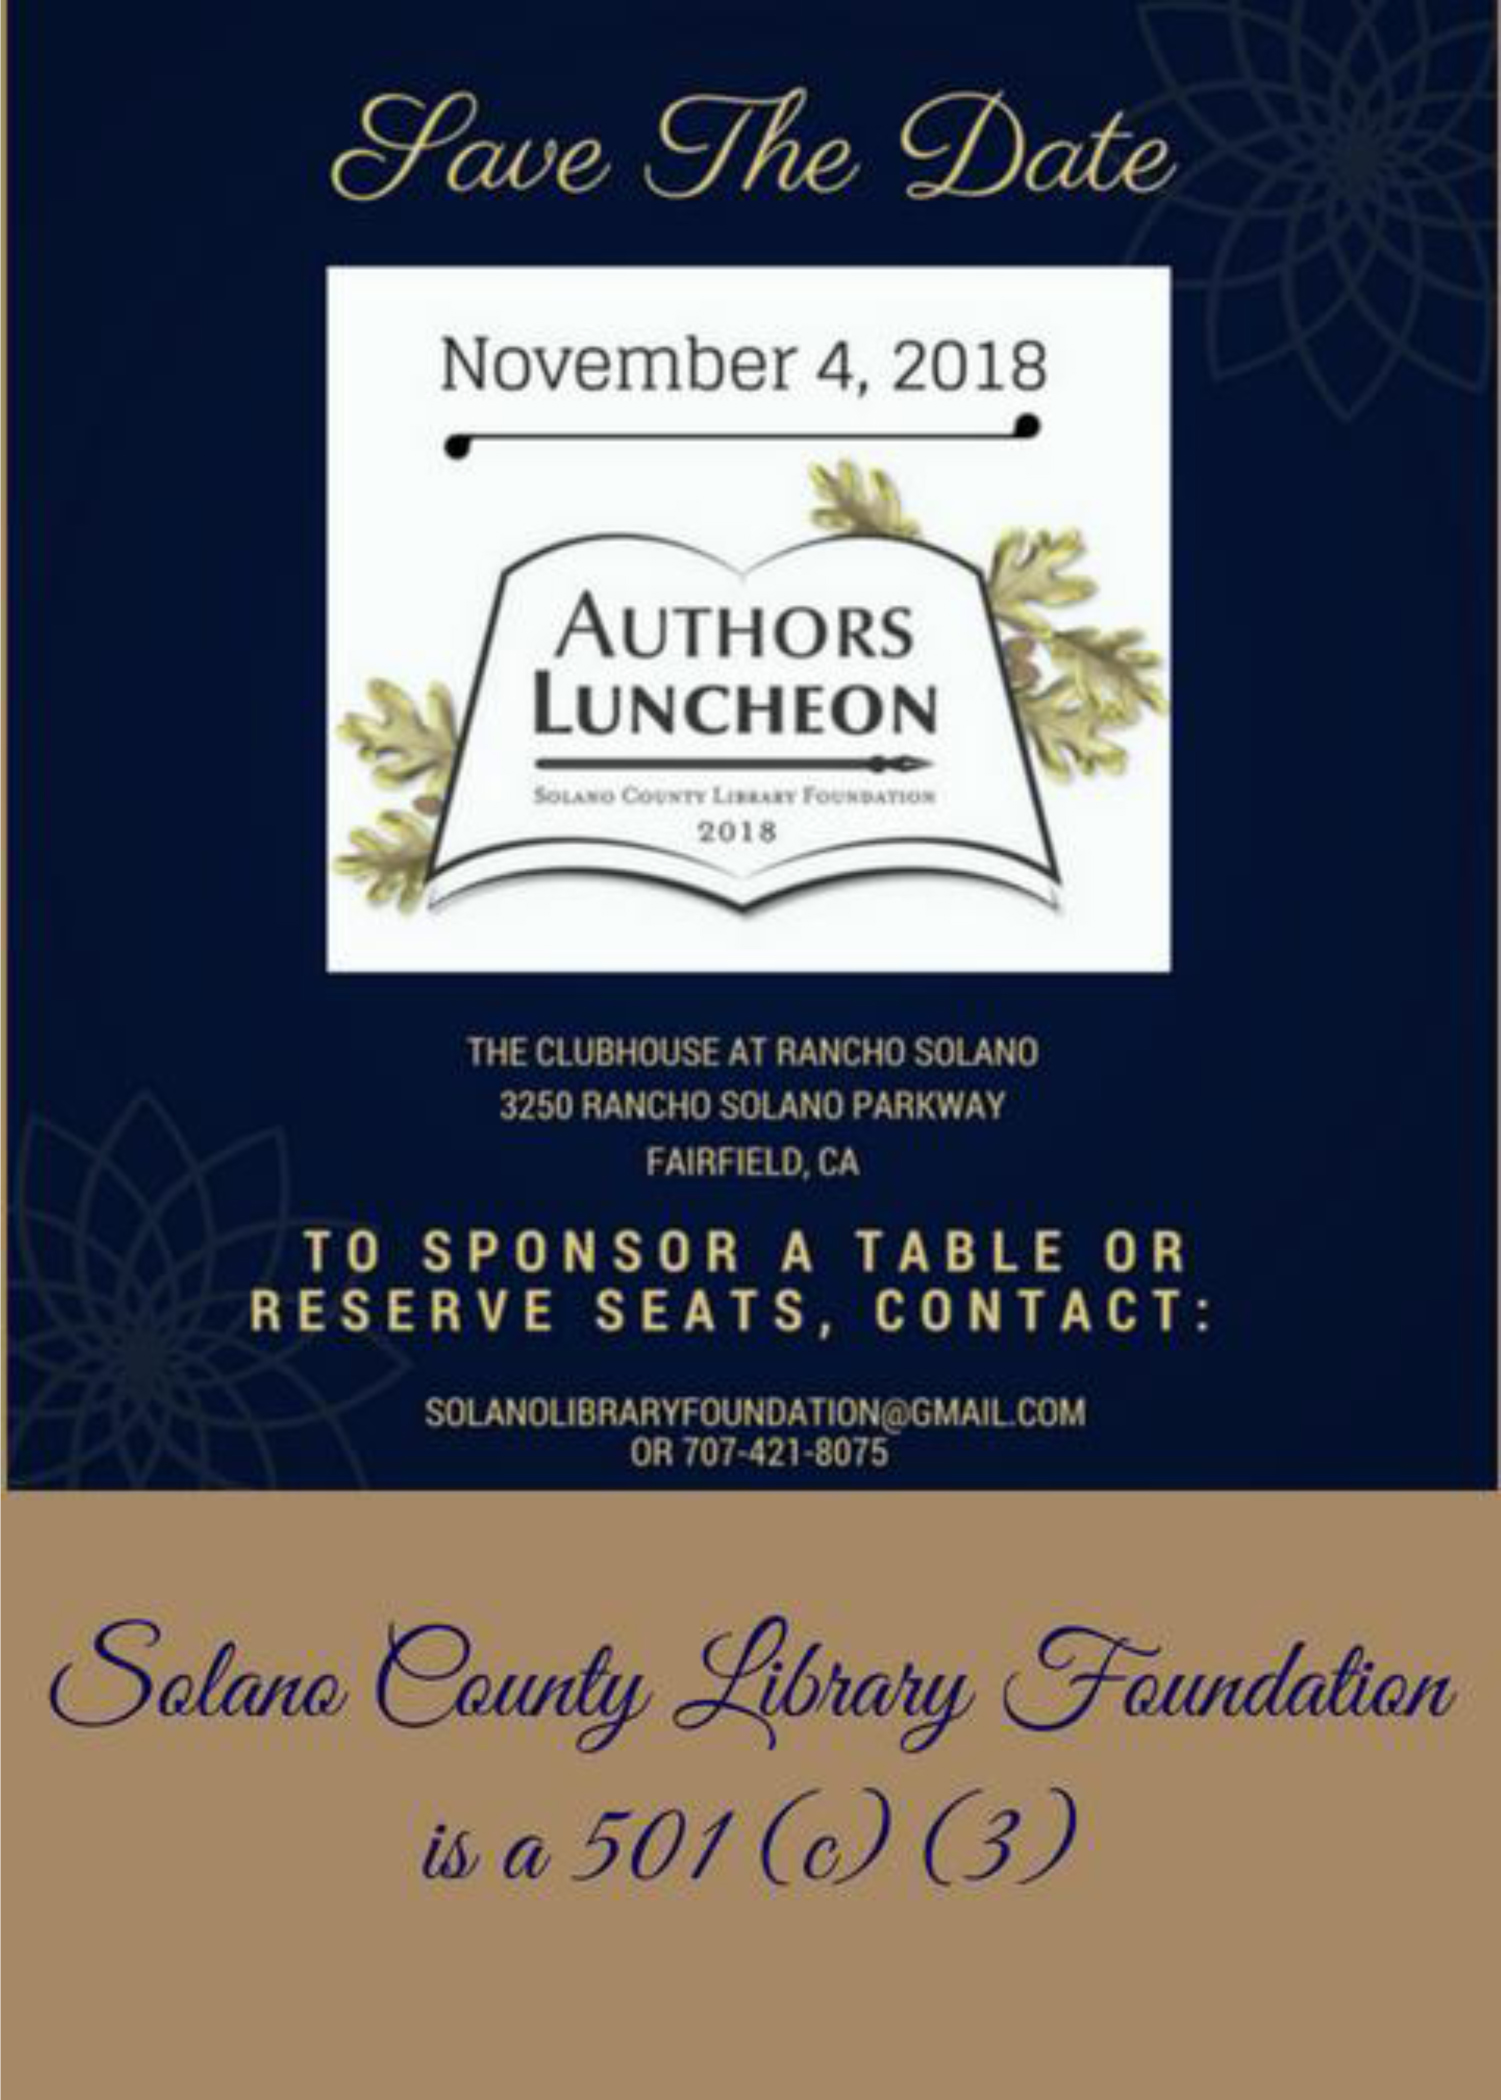 Solano-County-Library-Foundation-Save-the-Date